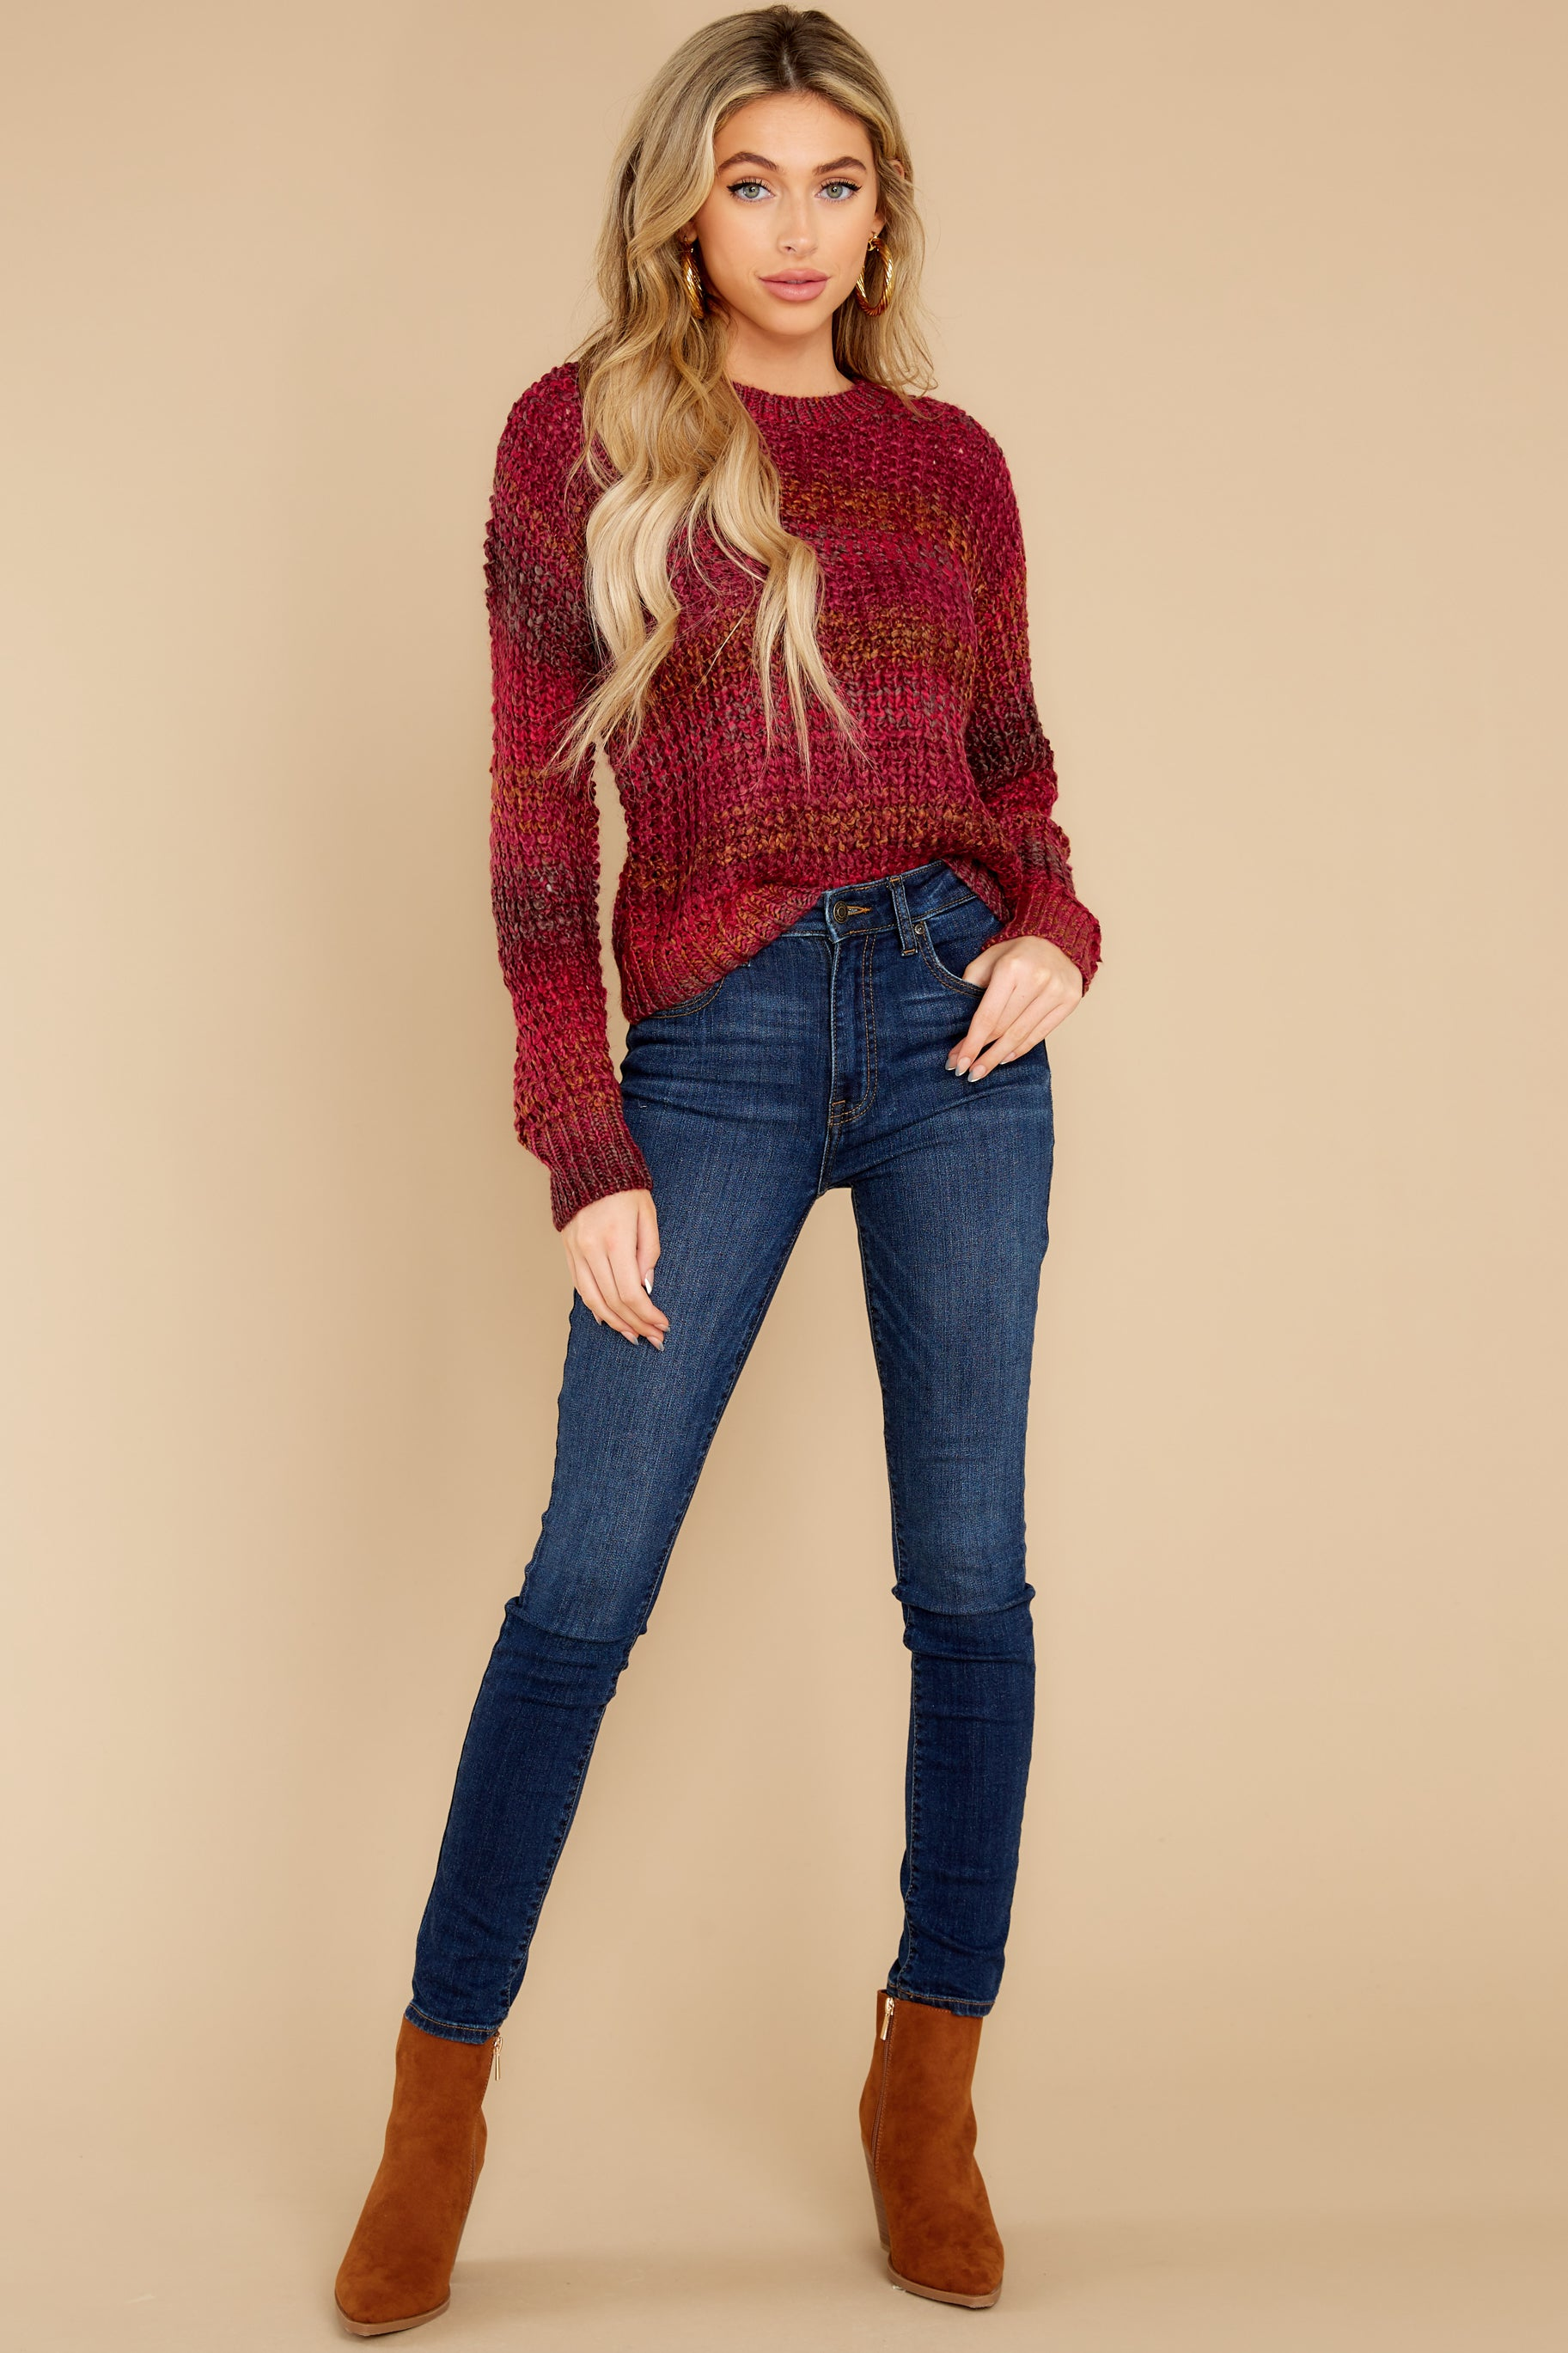 6 Catching Up Red Multi Knit Sweater at reddress.com